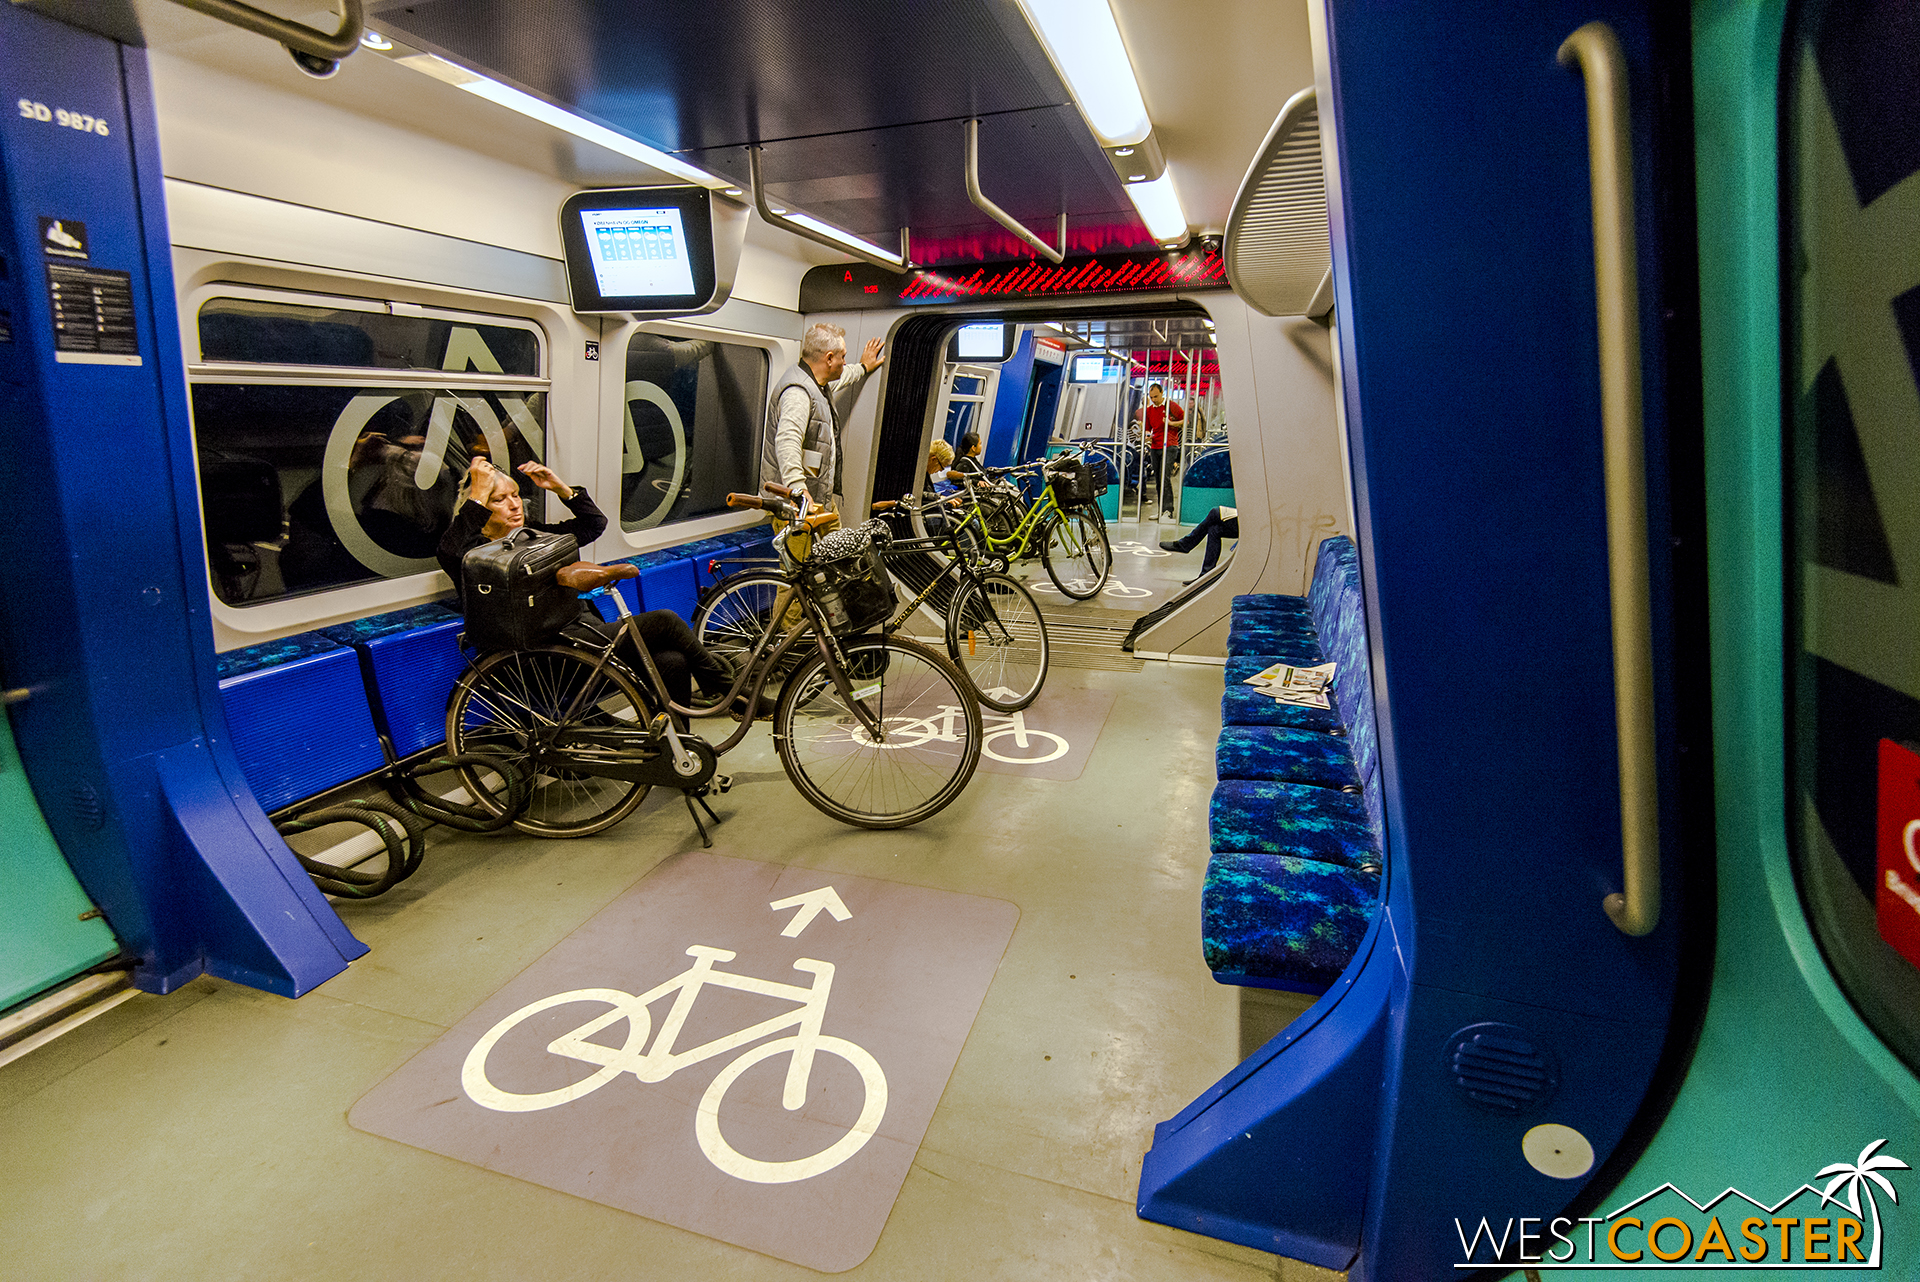 Bike friendliness integrates with public transportation in example of a bike car within one of the city's metro trains.